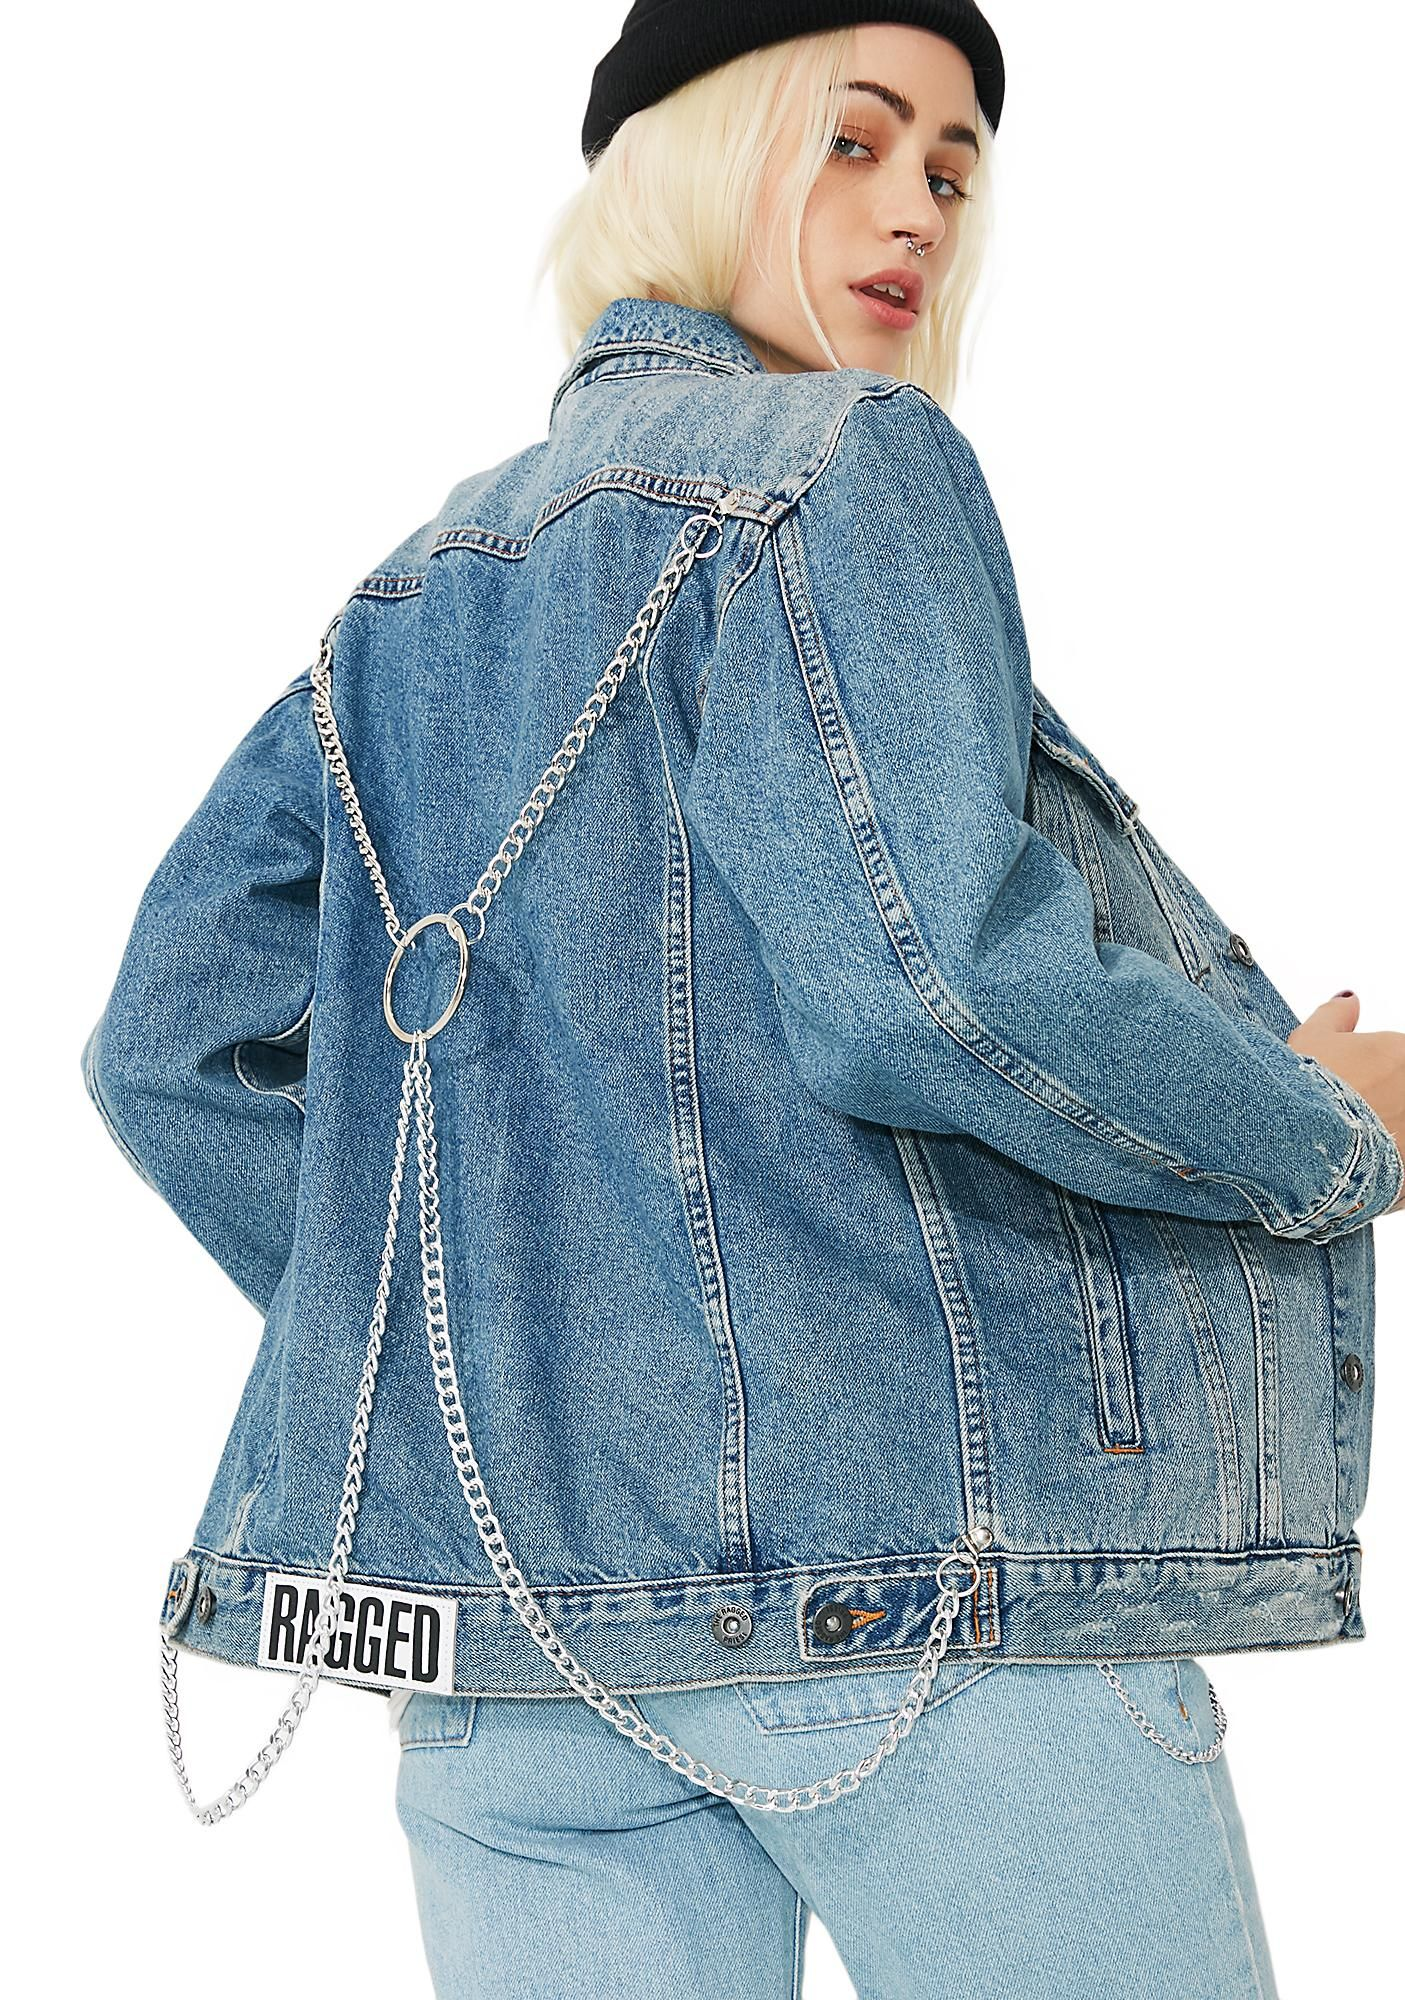 87576dae102b94 The Ragged Priest Bind Denim Jacket will hold ya close. This denim jacket  has silver chains on the back